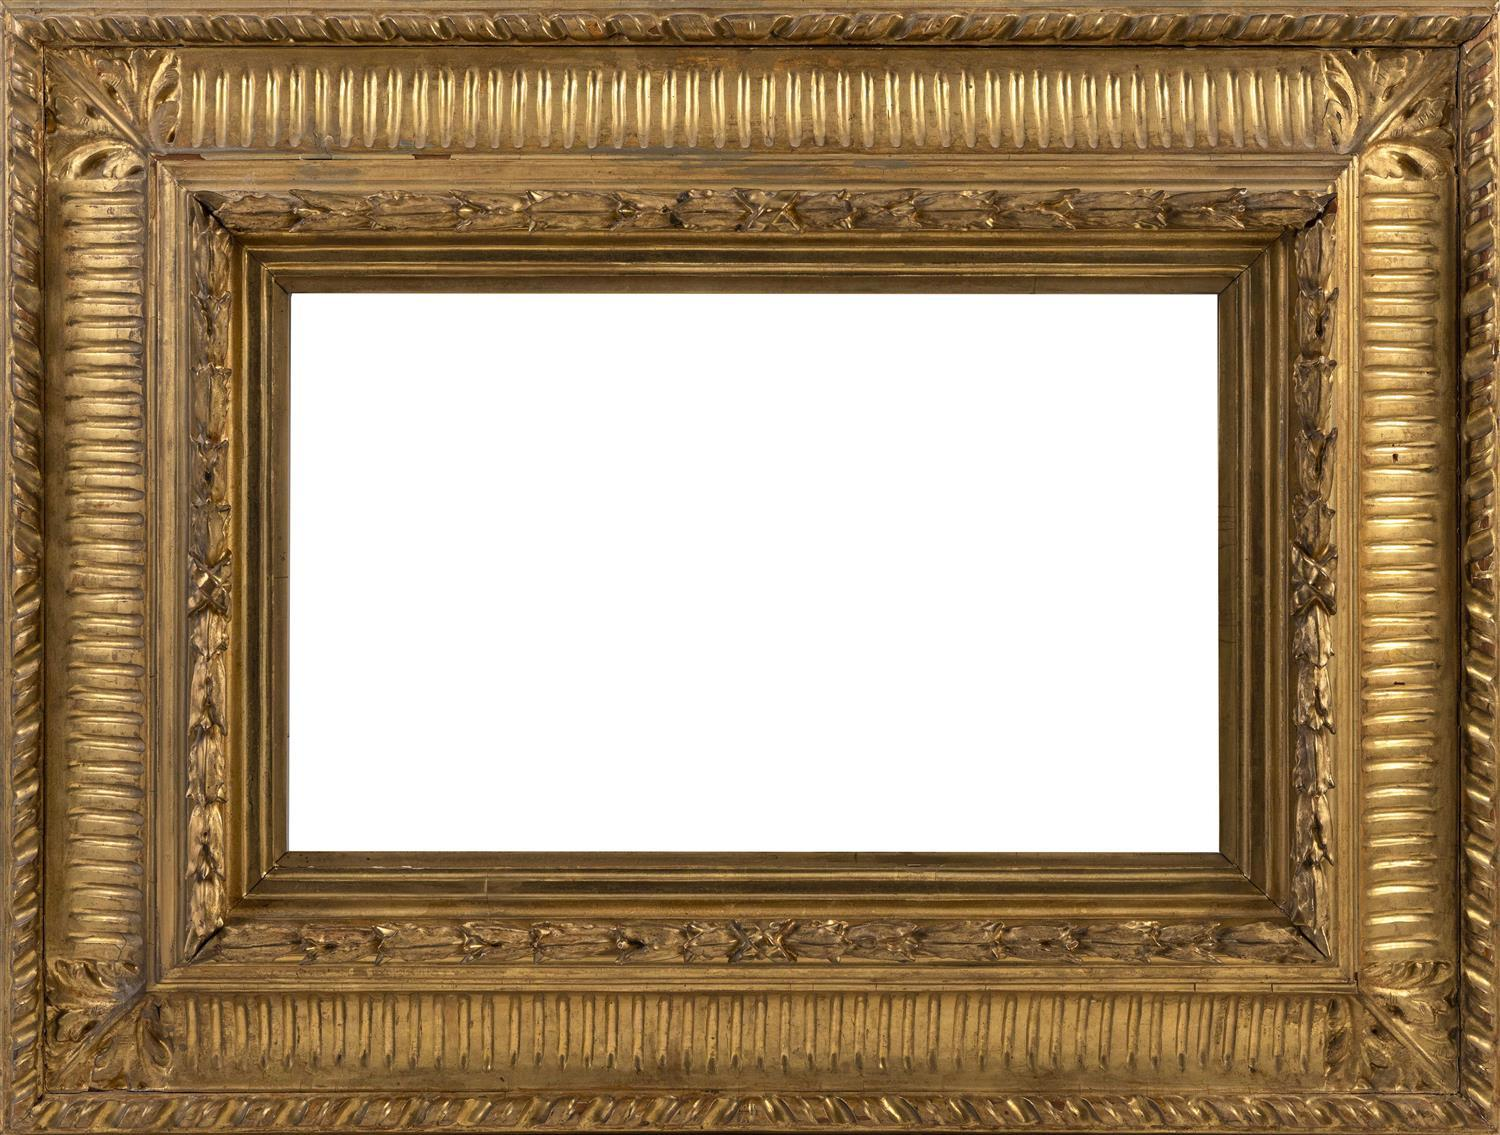 "GILT FRAME Deep curved moldings and acanthus leaf corners. Aperture 14.25"" x 22.25"". Overall 25"" x 33""."